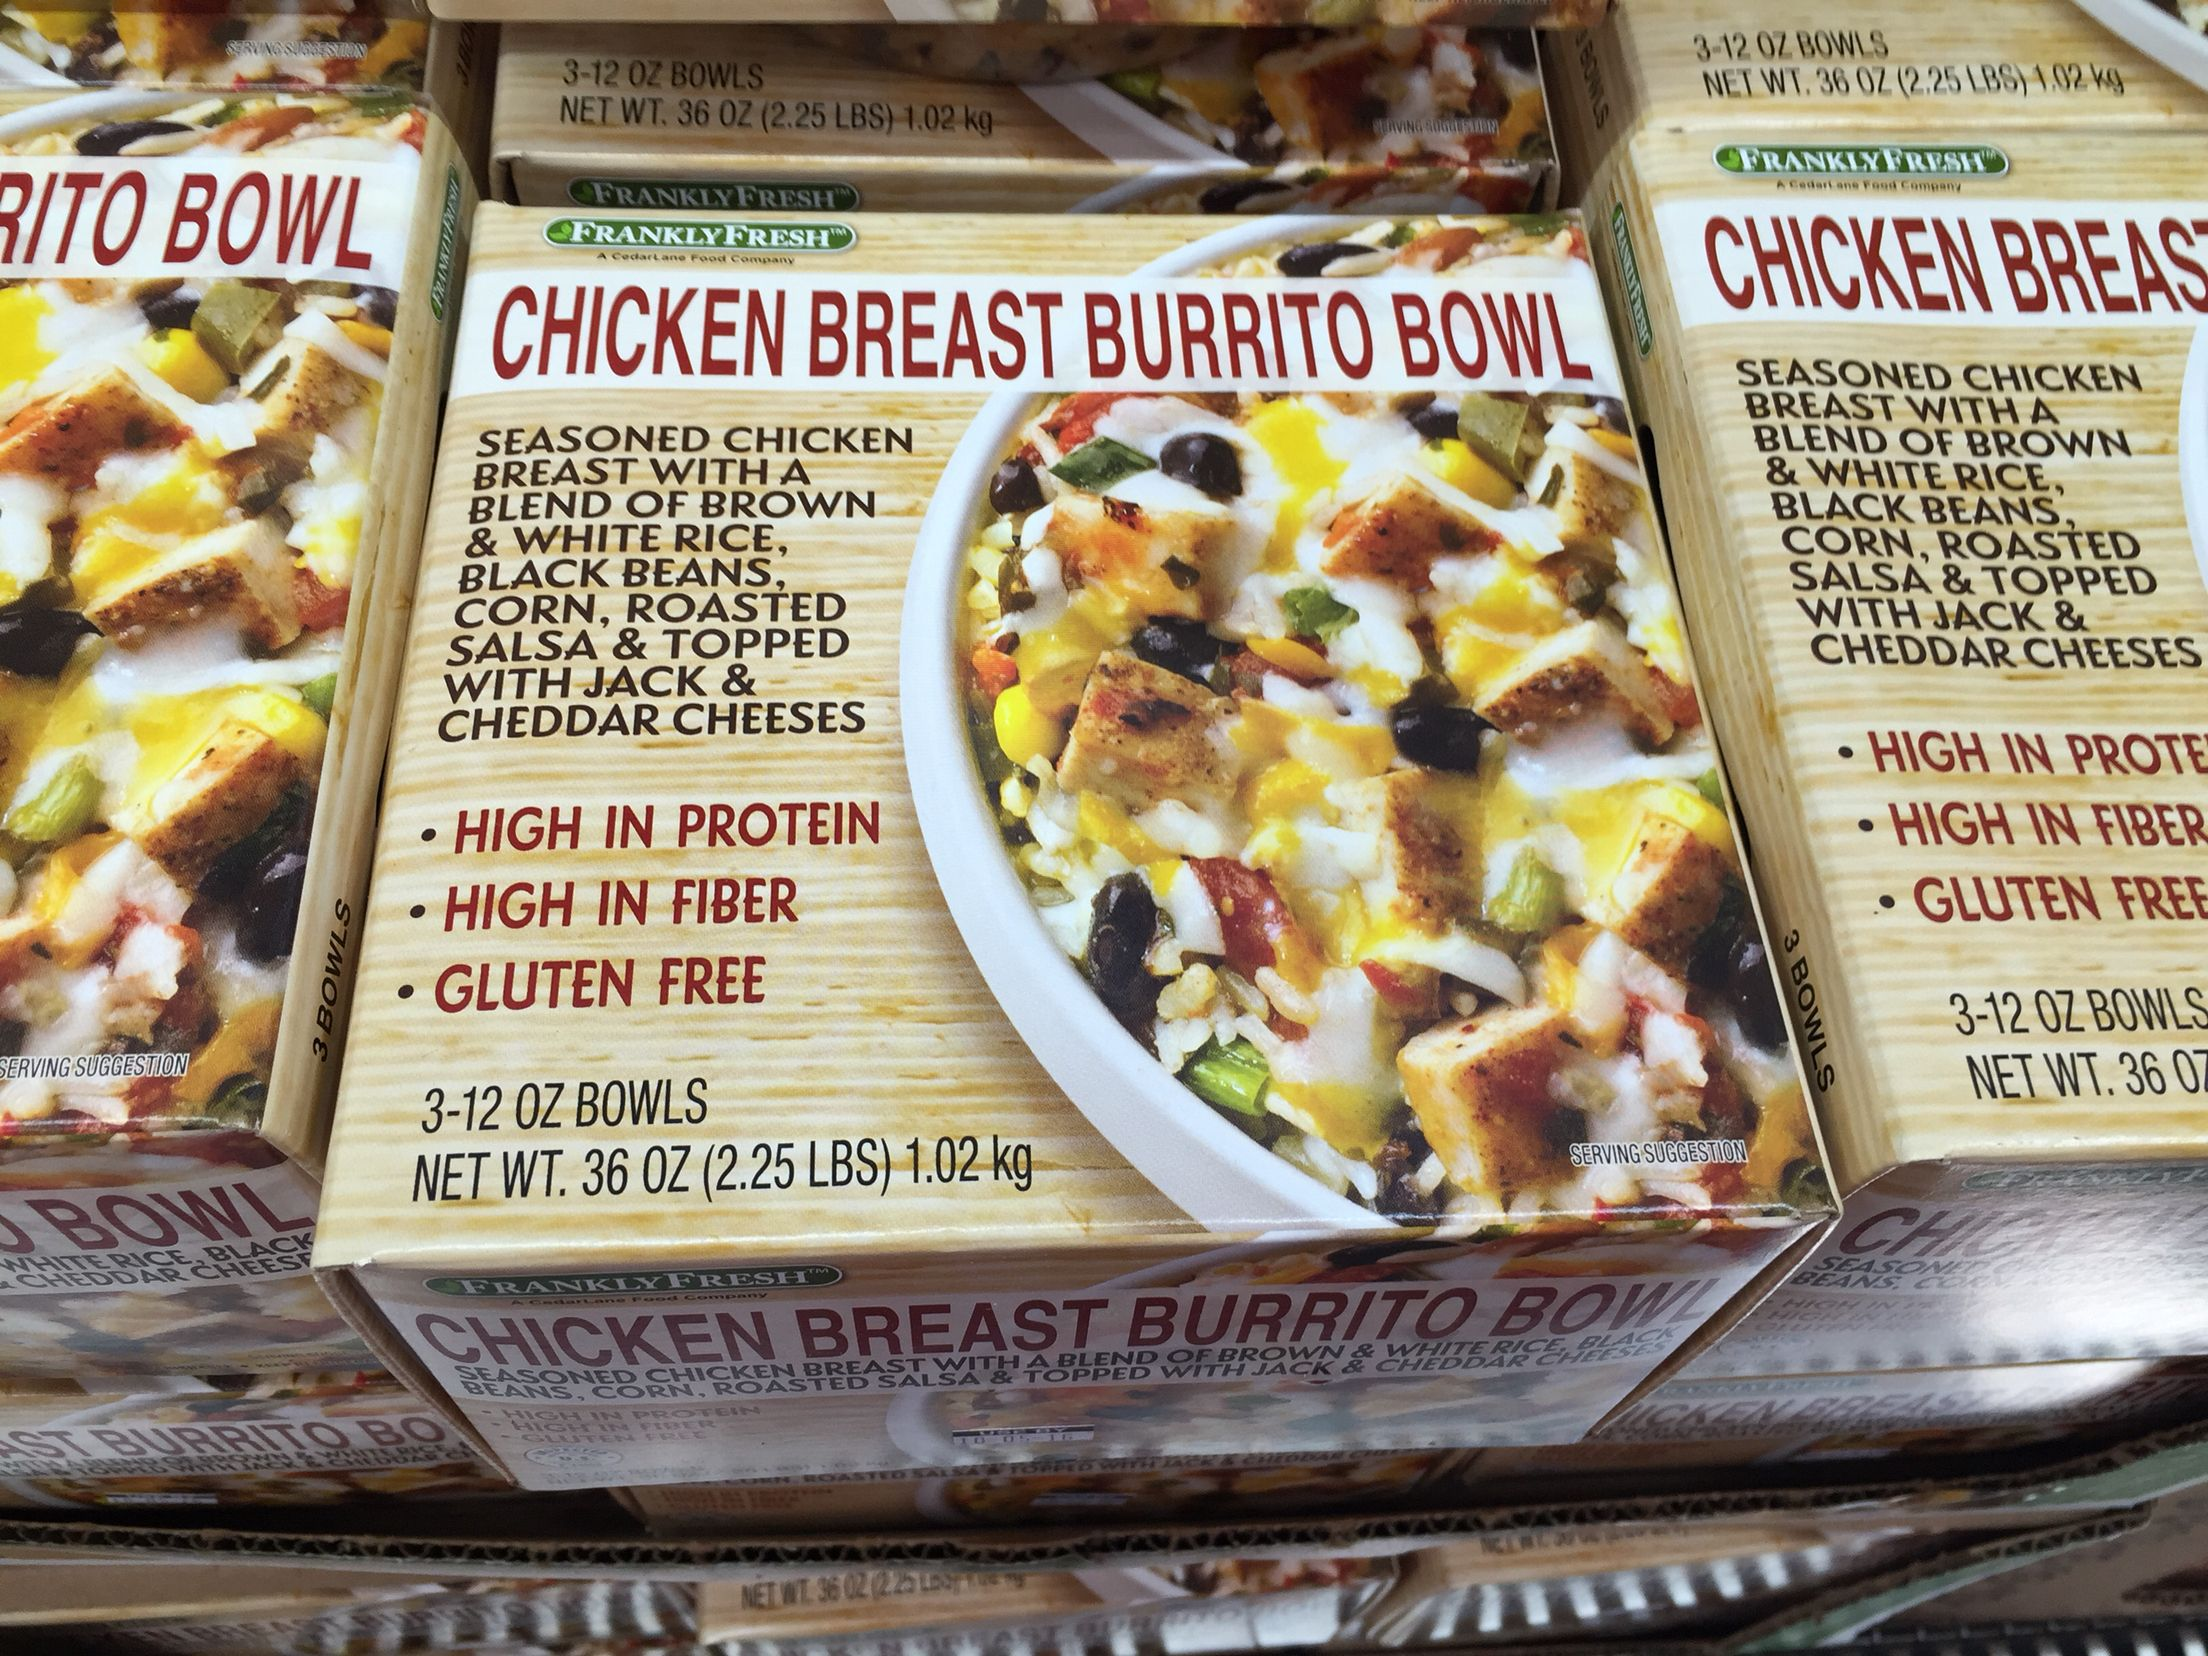 Chicken Burrito Bowl Is 390 Calories Add Side Salad Or Veggies